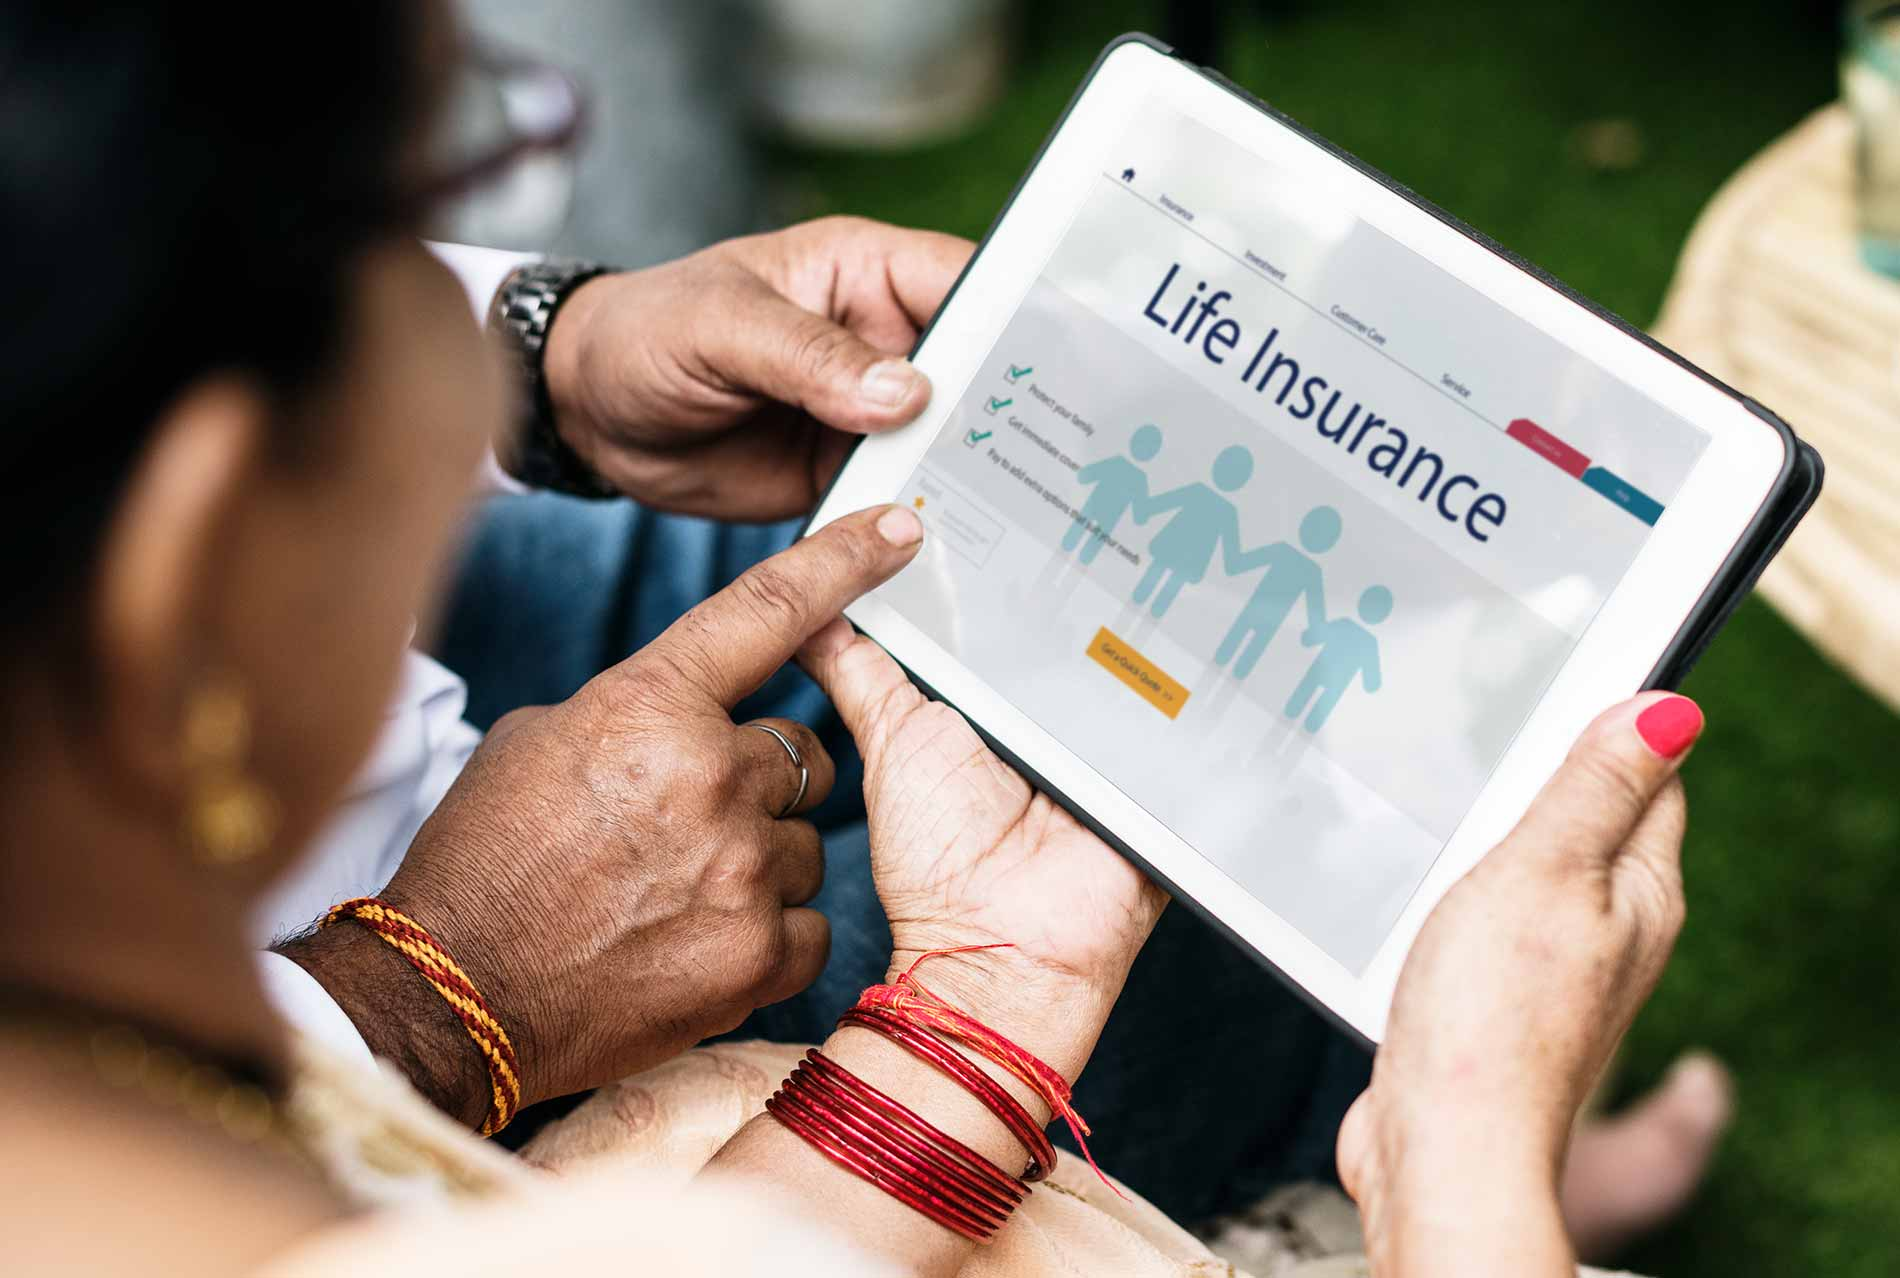 Indian family interested in life insurance claim process